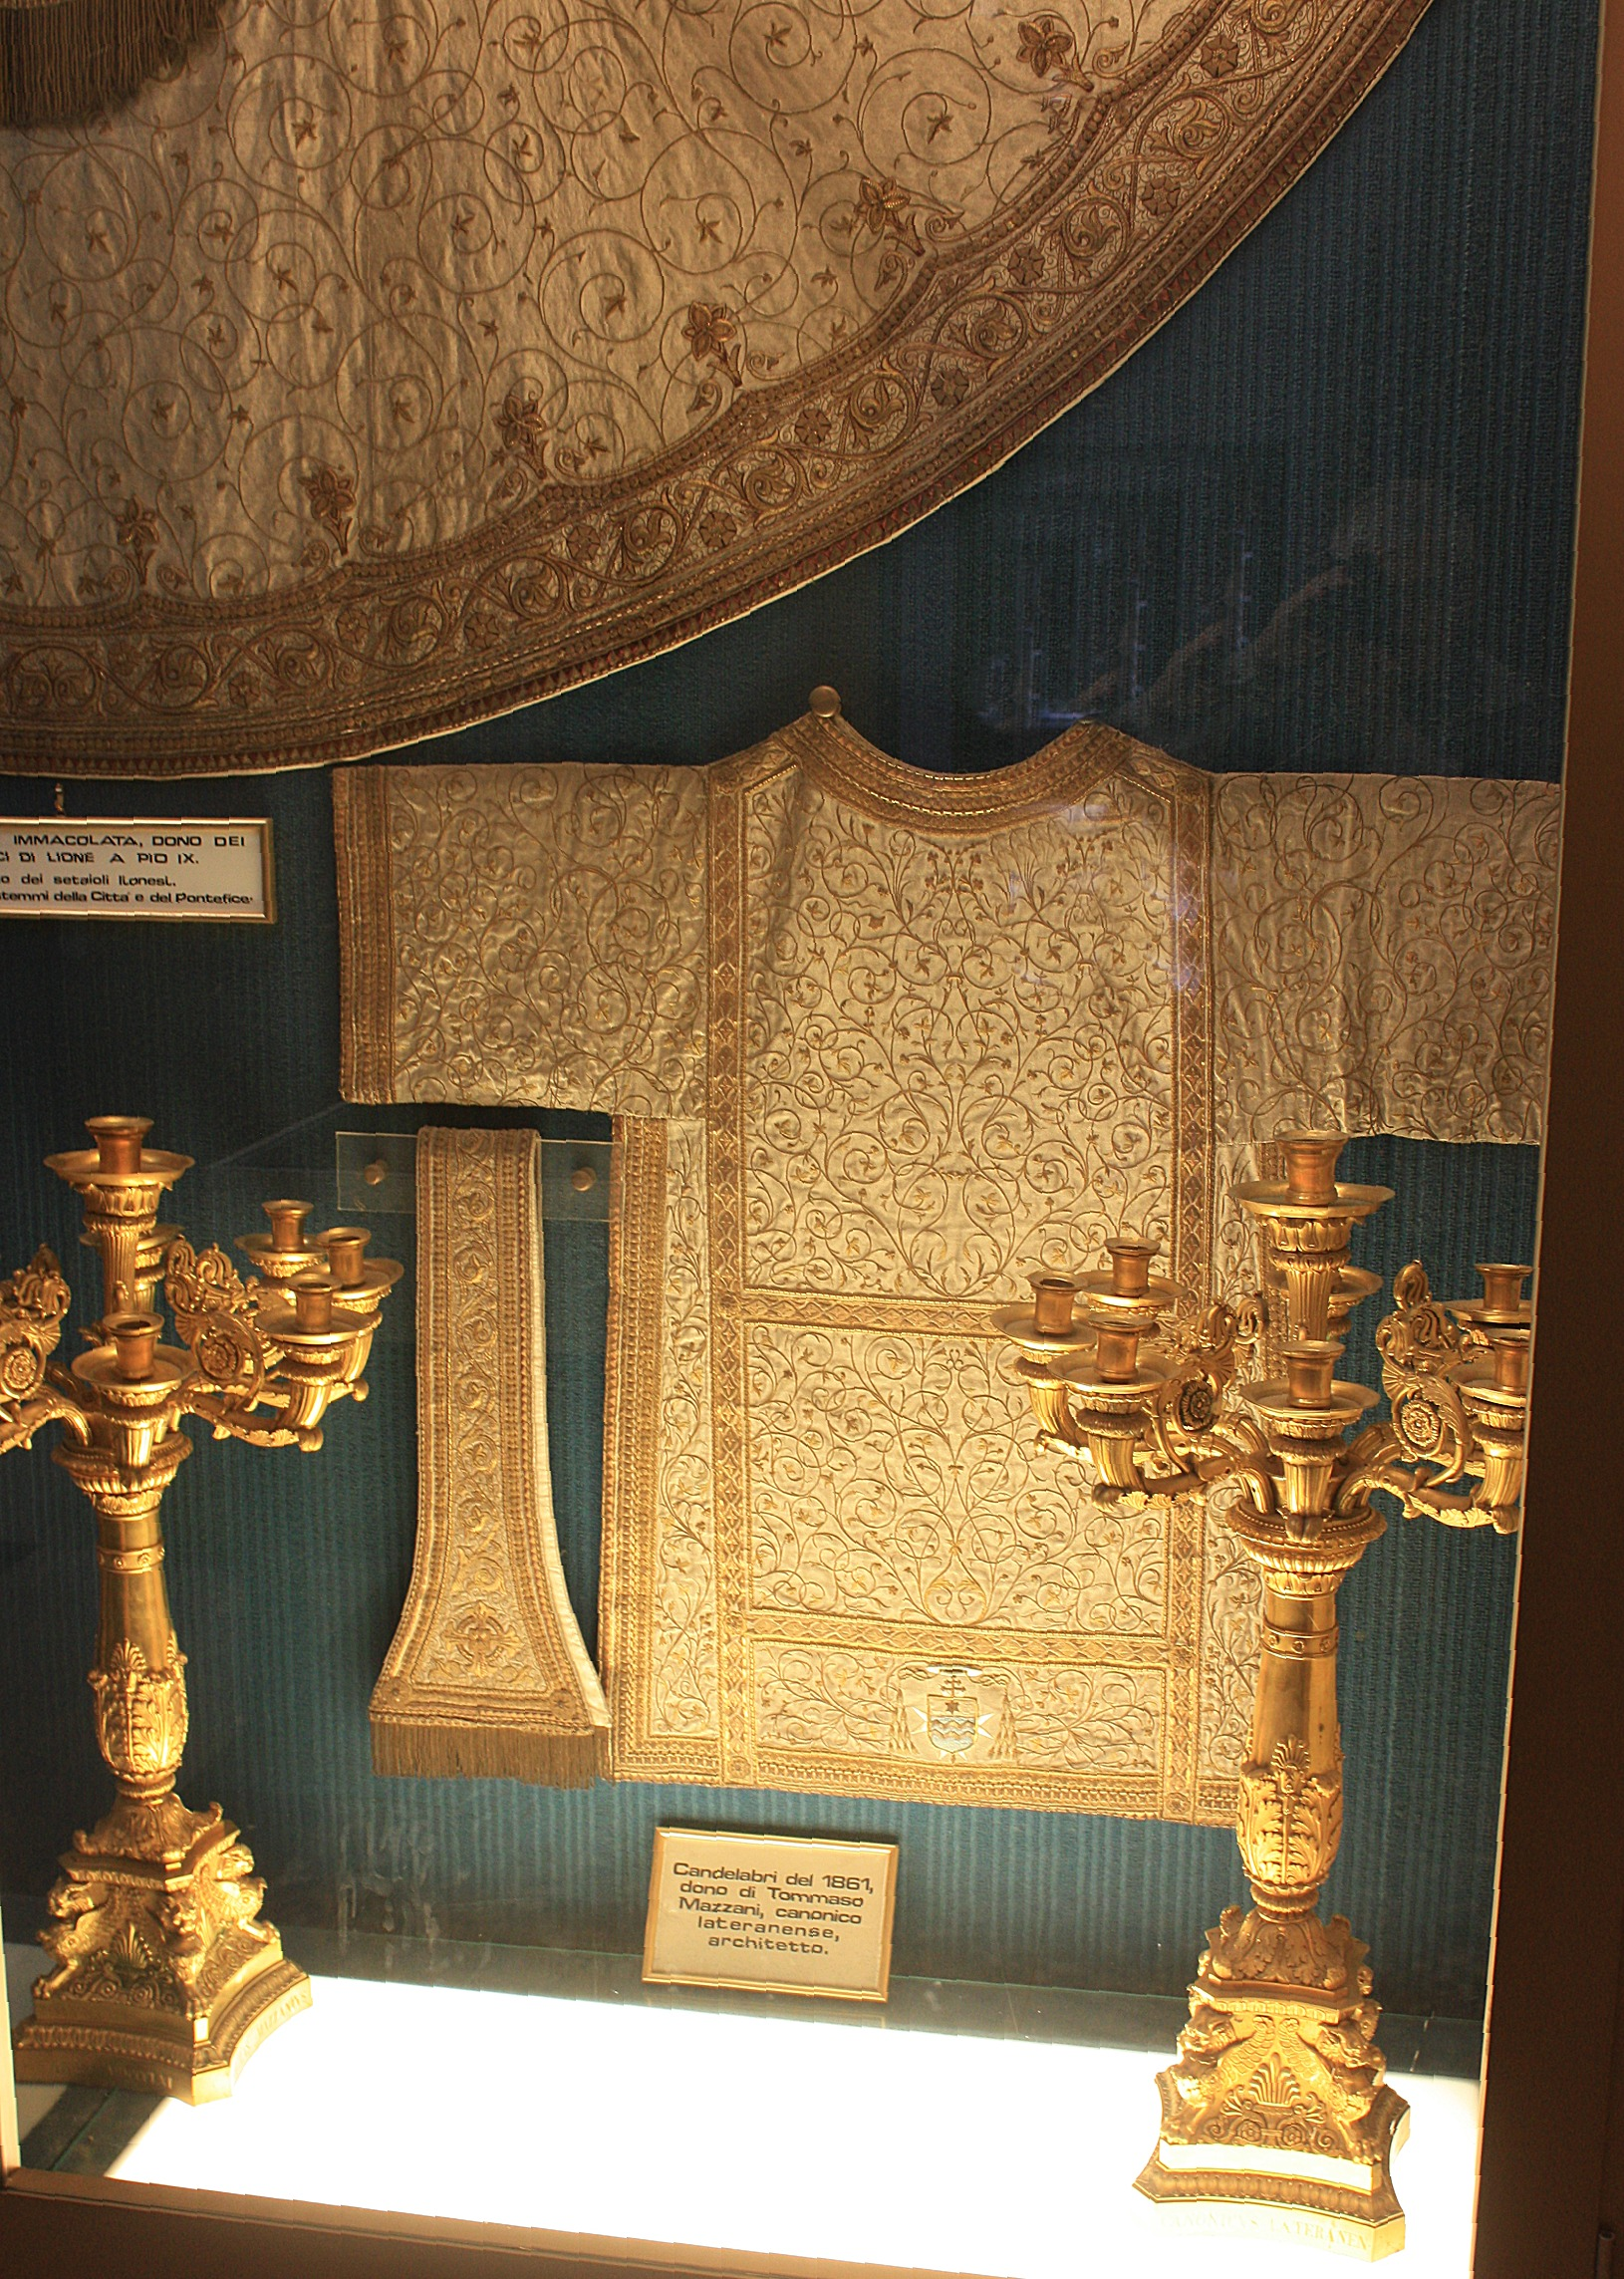 File:Rom, San Giovanni in Laterano, im Museum im Kreuzgang ...